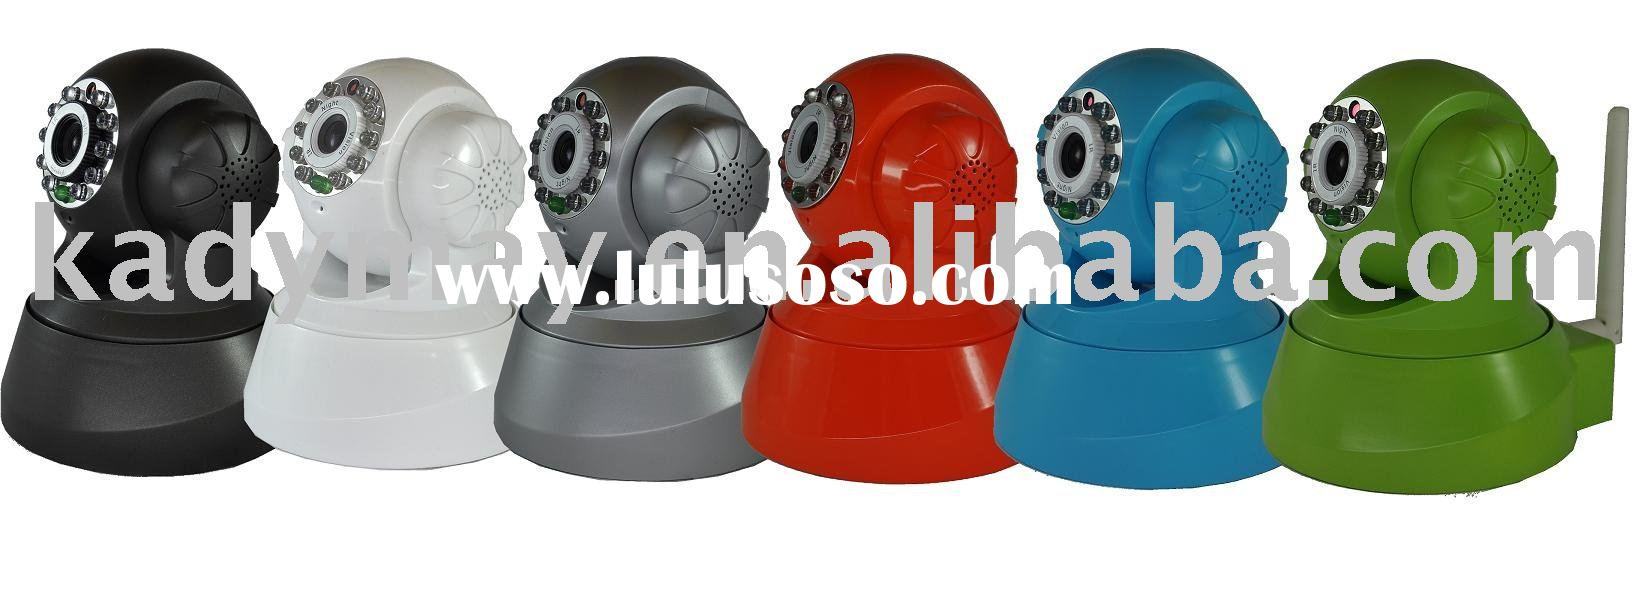 USD80 IP Camera Brinks Home Security